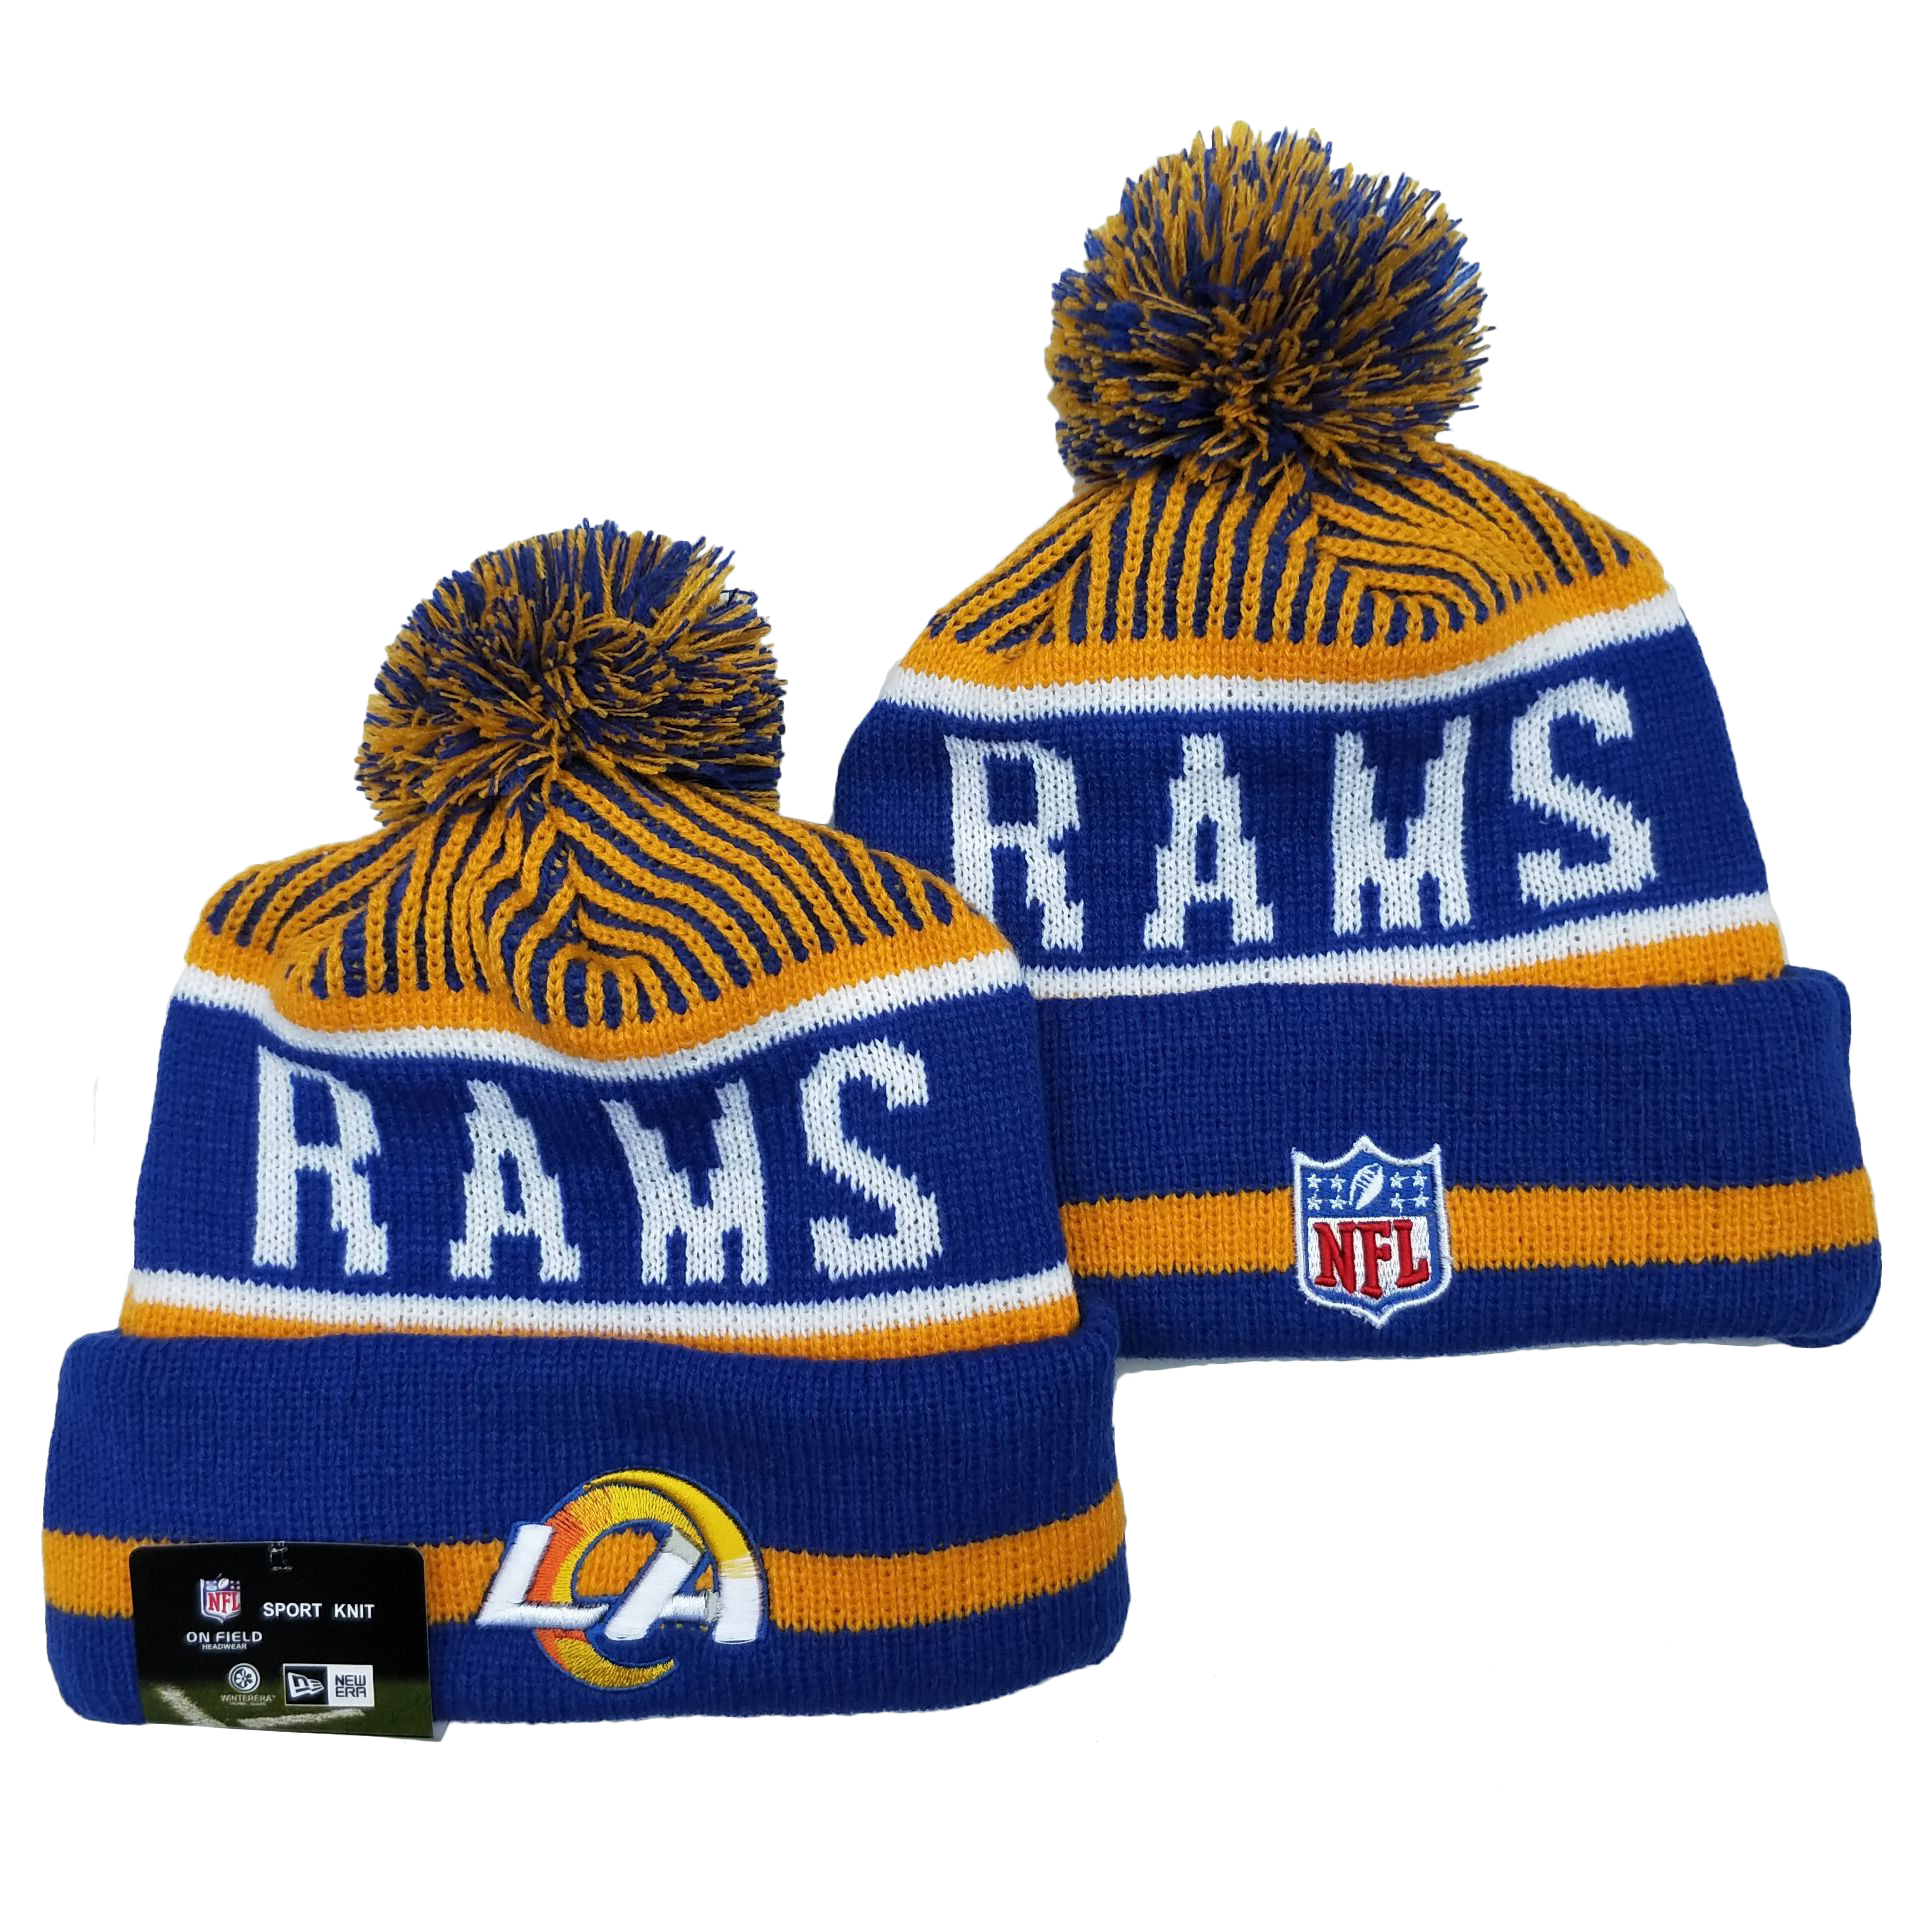 Los Angeles Rams Knit Hats 064